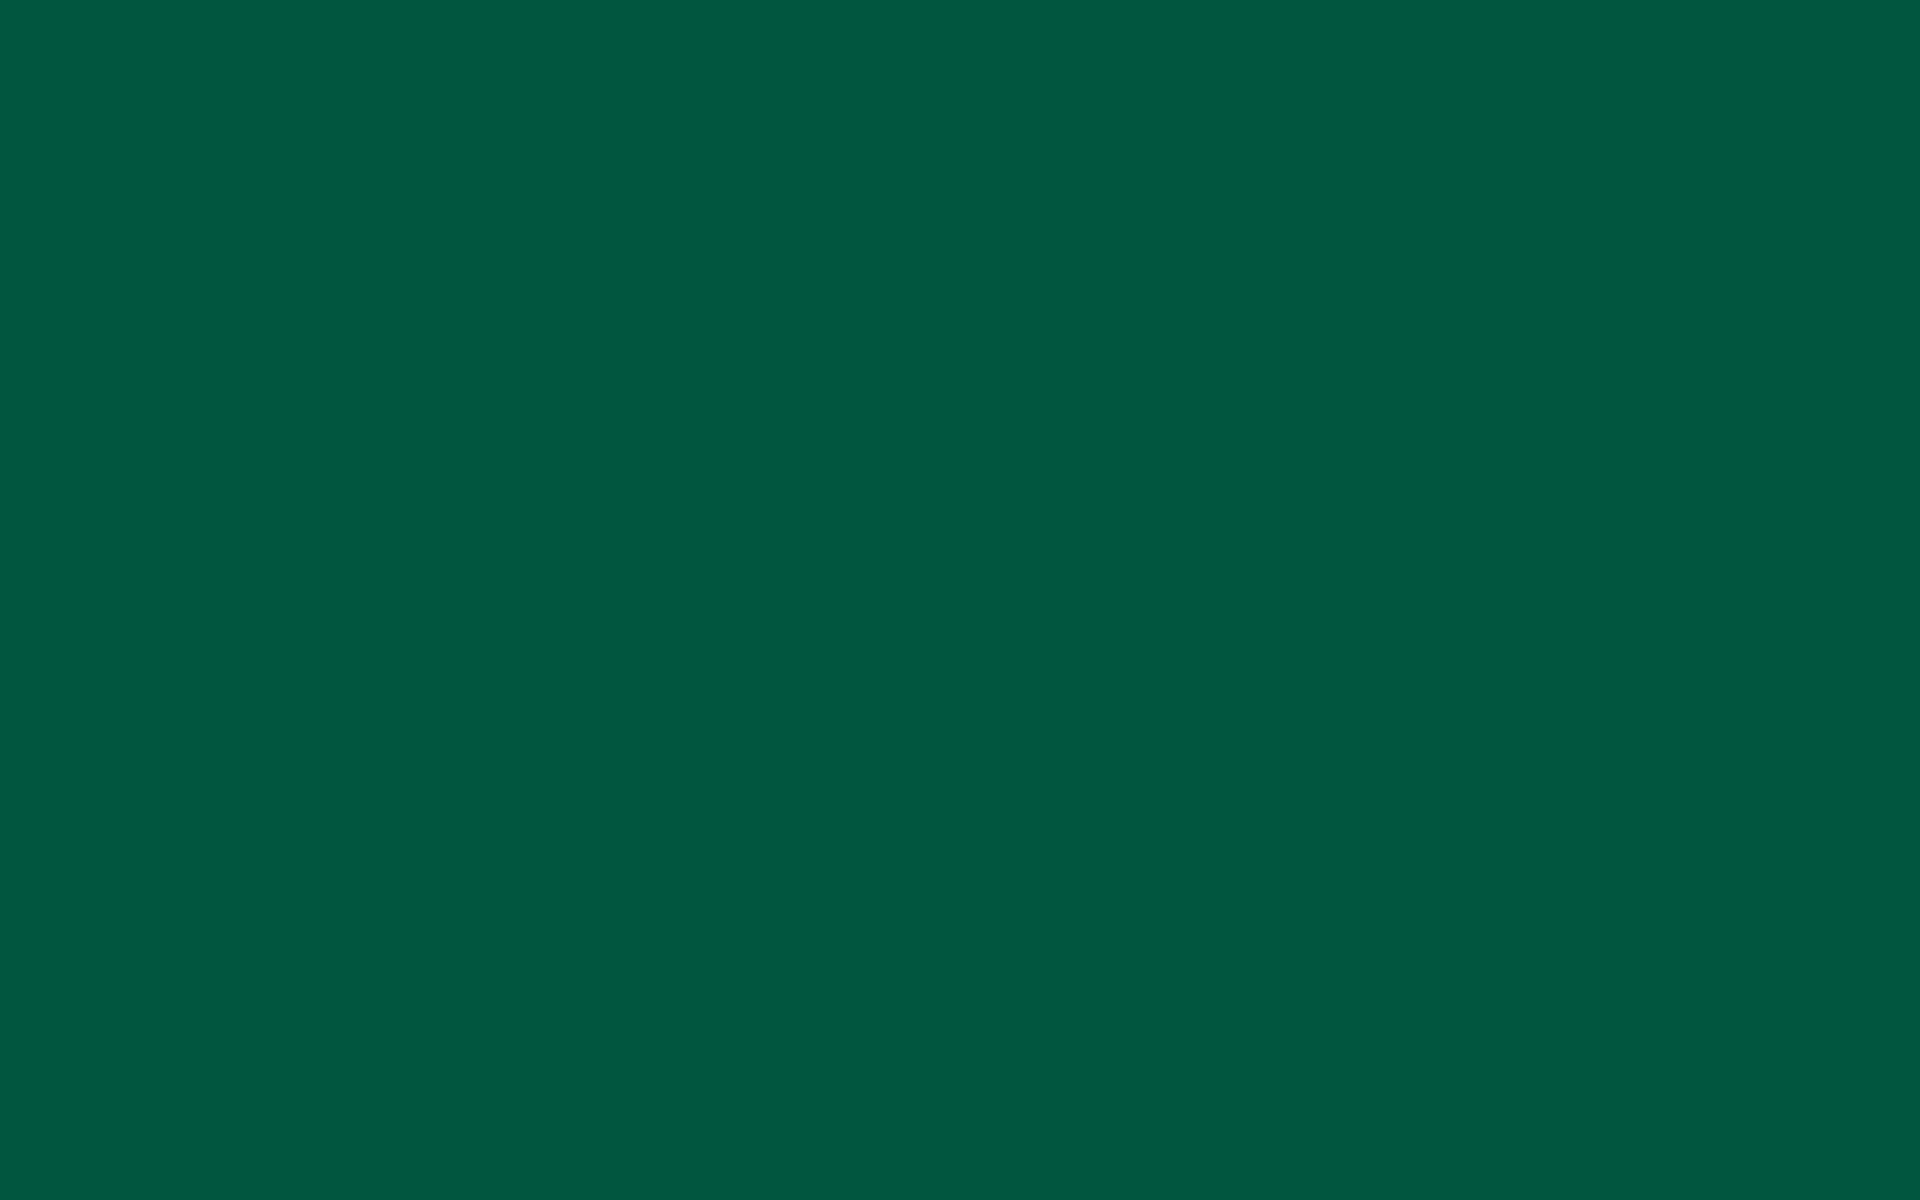 1920x1200 Sacramento State Green Solid Color Background